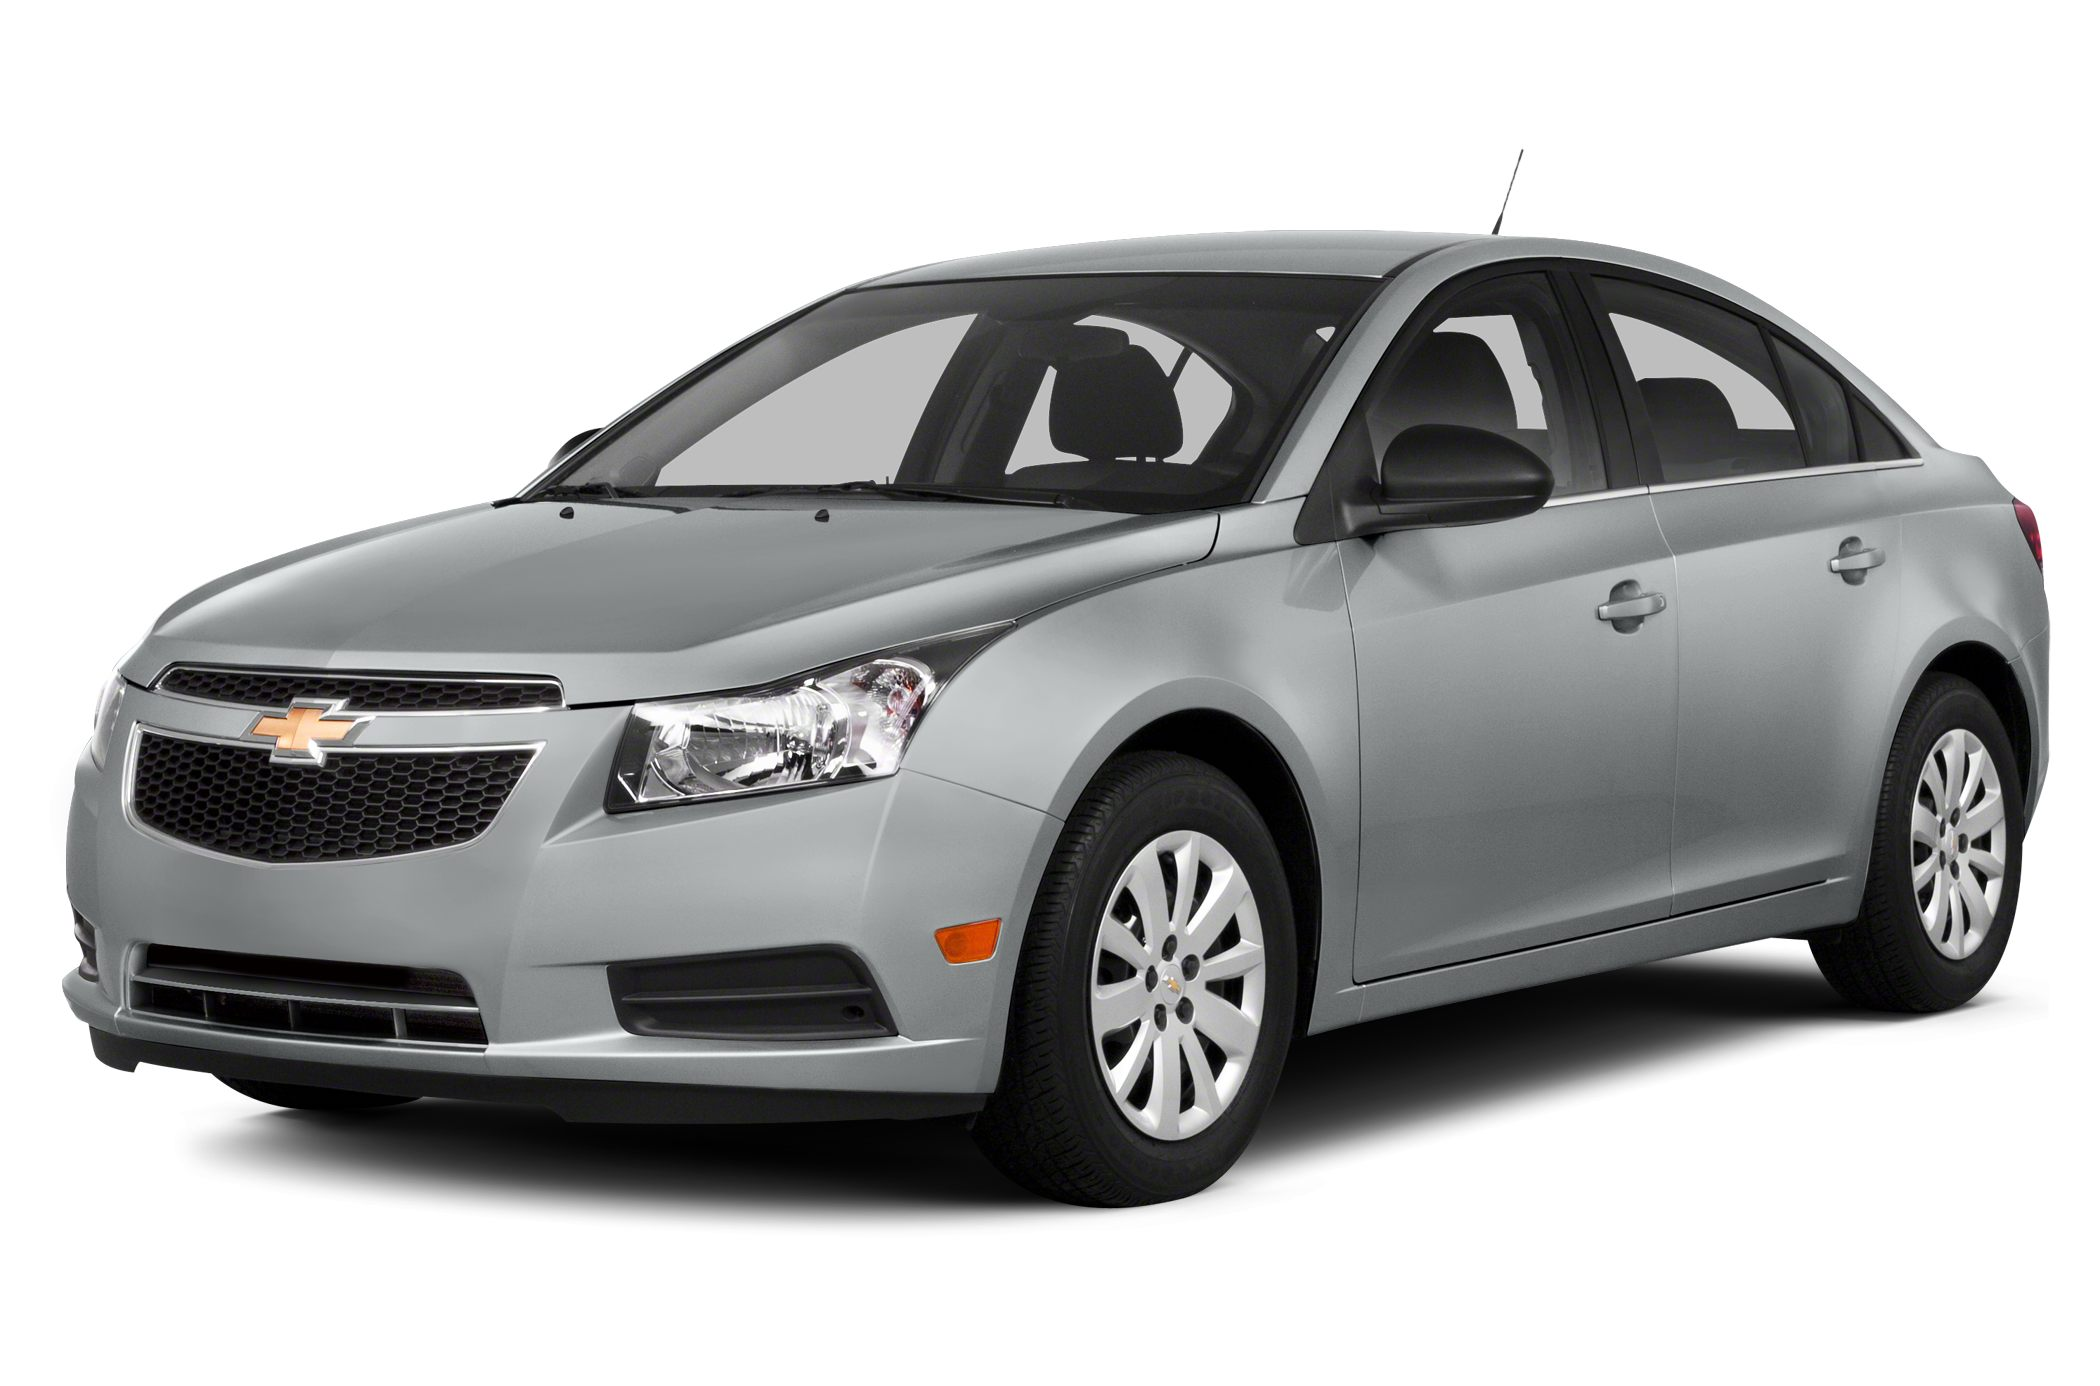 2014 Chevrolet Cruze 1LT Sedan for sale in Newark for $14,999 with 31,965 miles.